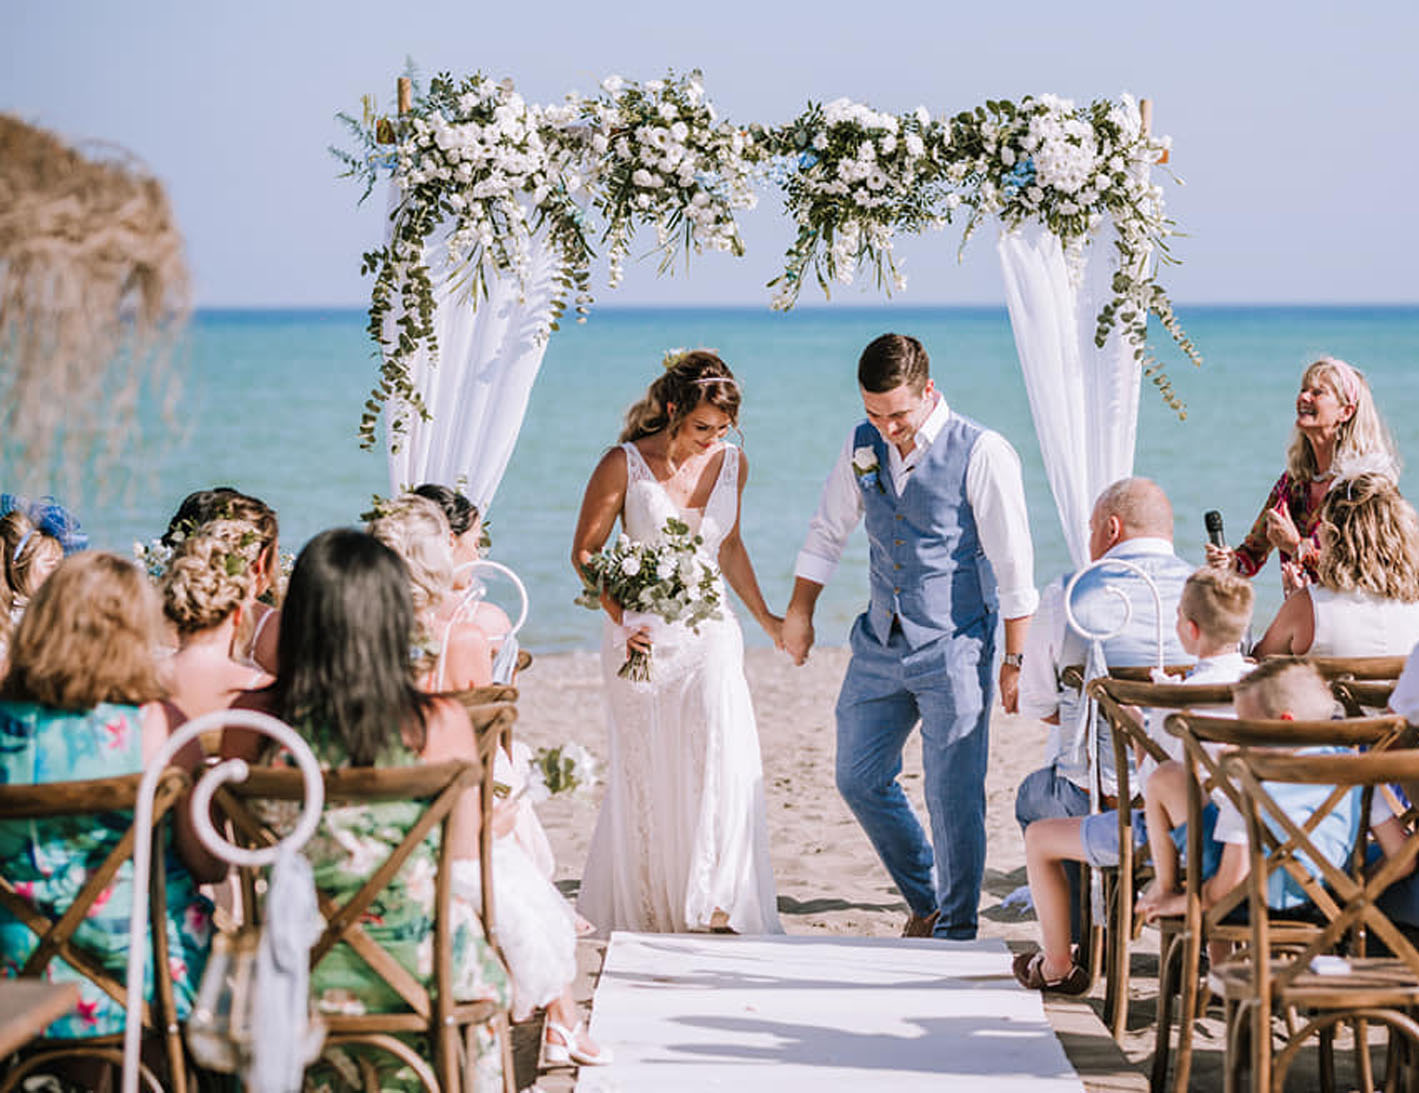 Natasha Ince photo of beach bower at wedding ceremony in Torremolinos officiated by Celebrant Spain